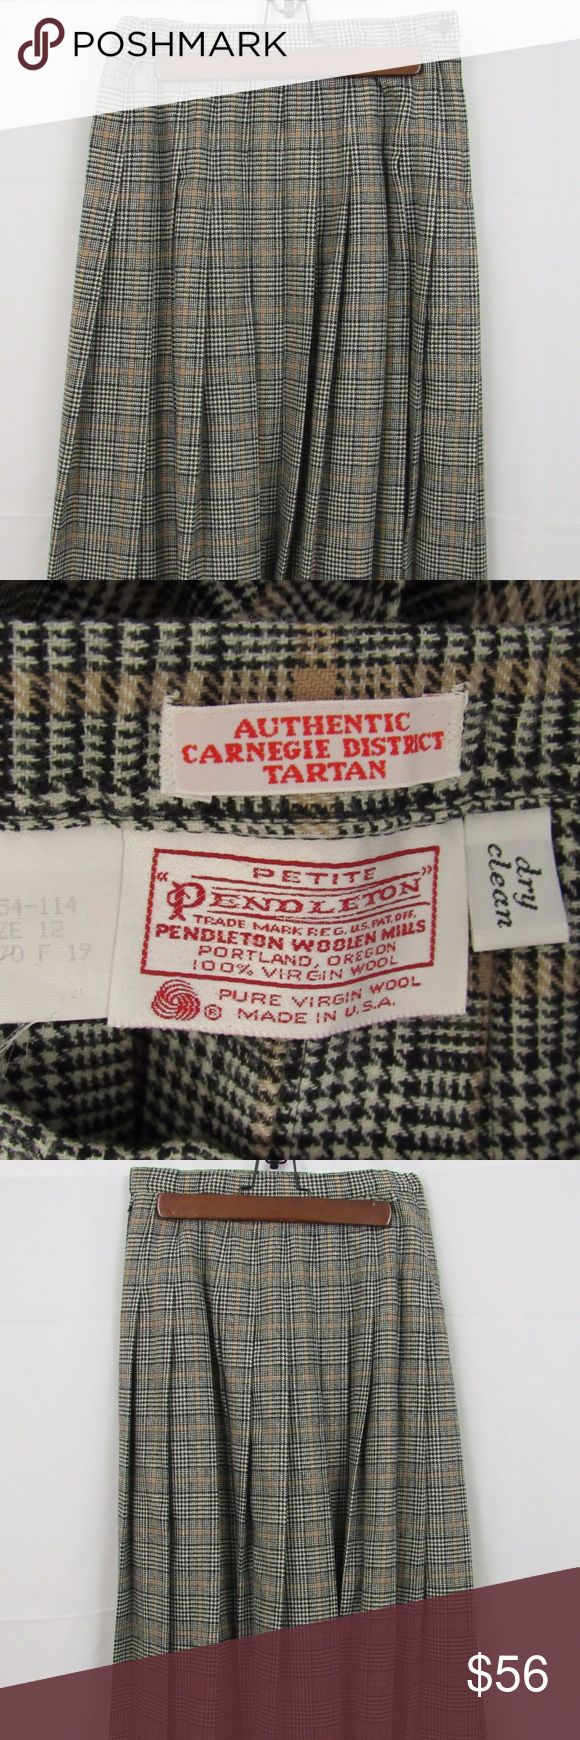 """    Pendleton size 12(P) Tartan Jacket & Skirt Made in the USA Classic Pendleton 100% wool Authentic Carnegie District Tartan Skirt and matching jacket. Seemingly flawless but please zoom in to make a determination. The skirt waist measures 26""""; hips 38""""; length 30"""". The jacket measures 16 1/2"""" shoulder to shoulder; 8 1/2"""" from center of the back to the shoulder hem; 24"""" from shoulder hem to end of sleeve; 25"""" in length. Plz ask anything-not sure of the needed information here. This suit…"""